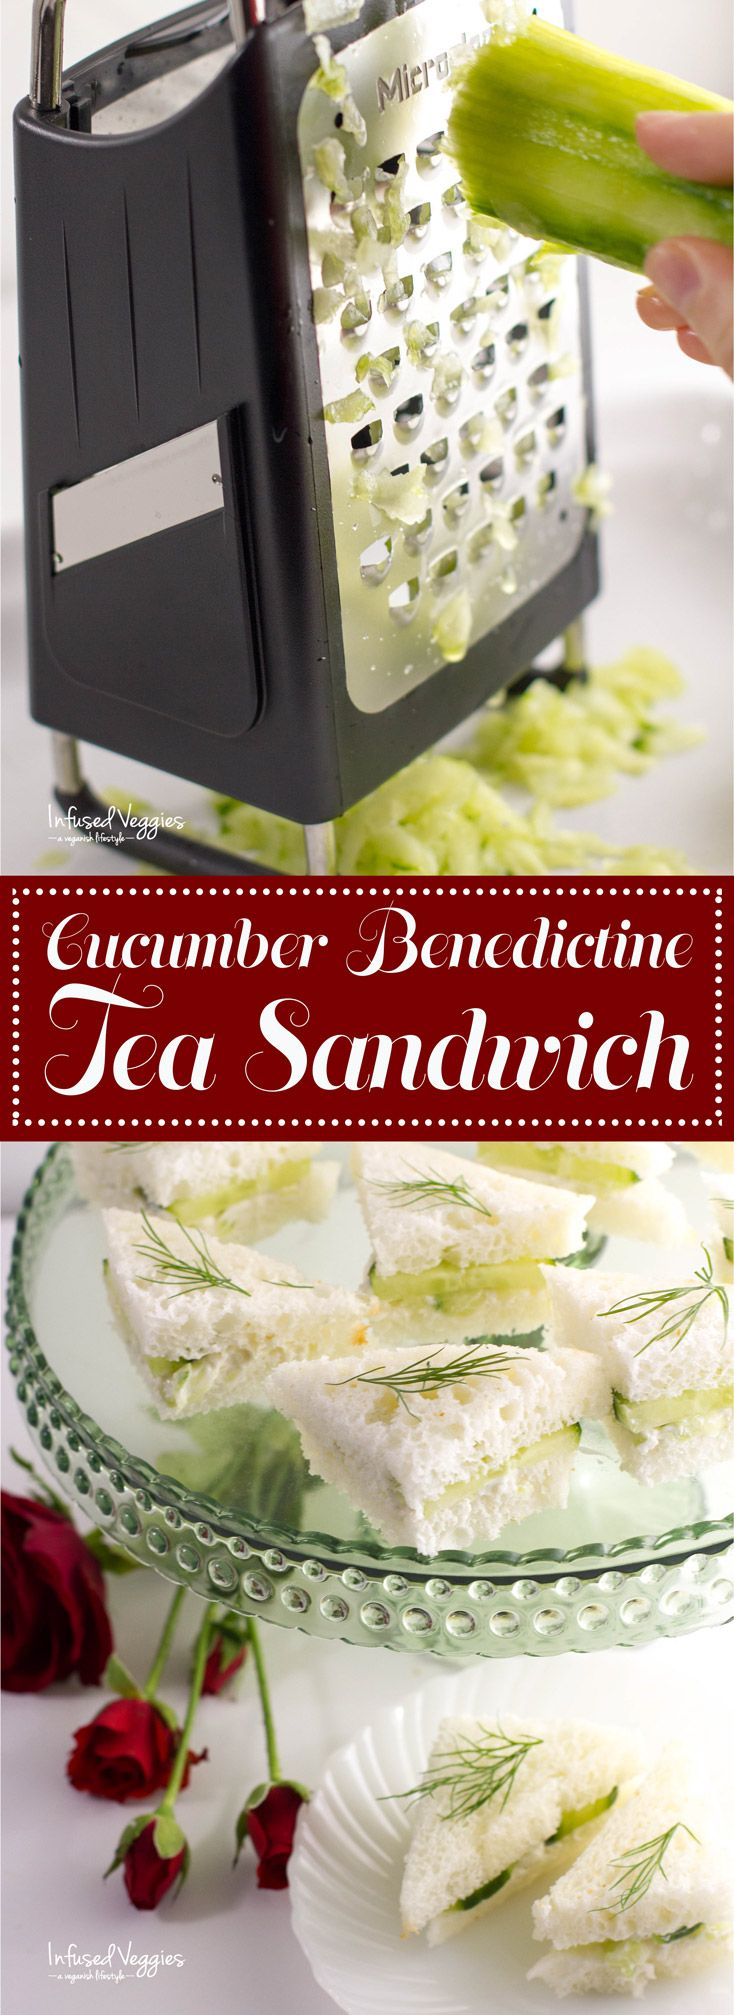 Cucumber benedictine tea sandwiches - a simply delicious appetizer that make the perfect dish for your next get together or party. Plus, they are vegan & gluten free too! Oh so good. infusedveggies.com